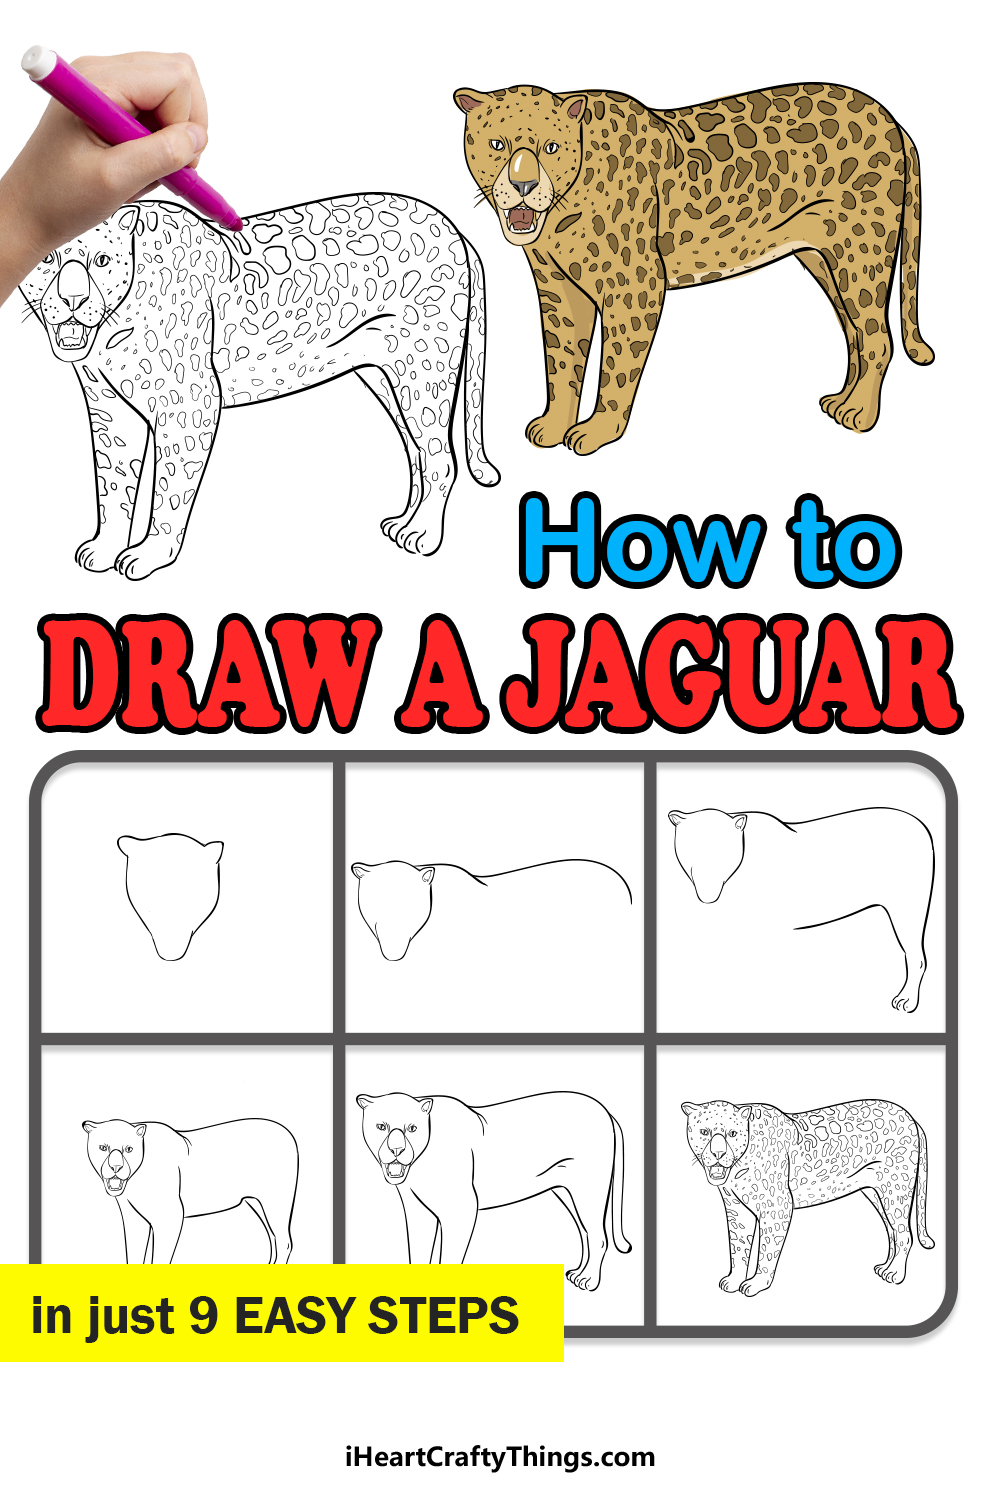 how to draw a jaguar in 9 easy steps